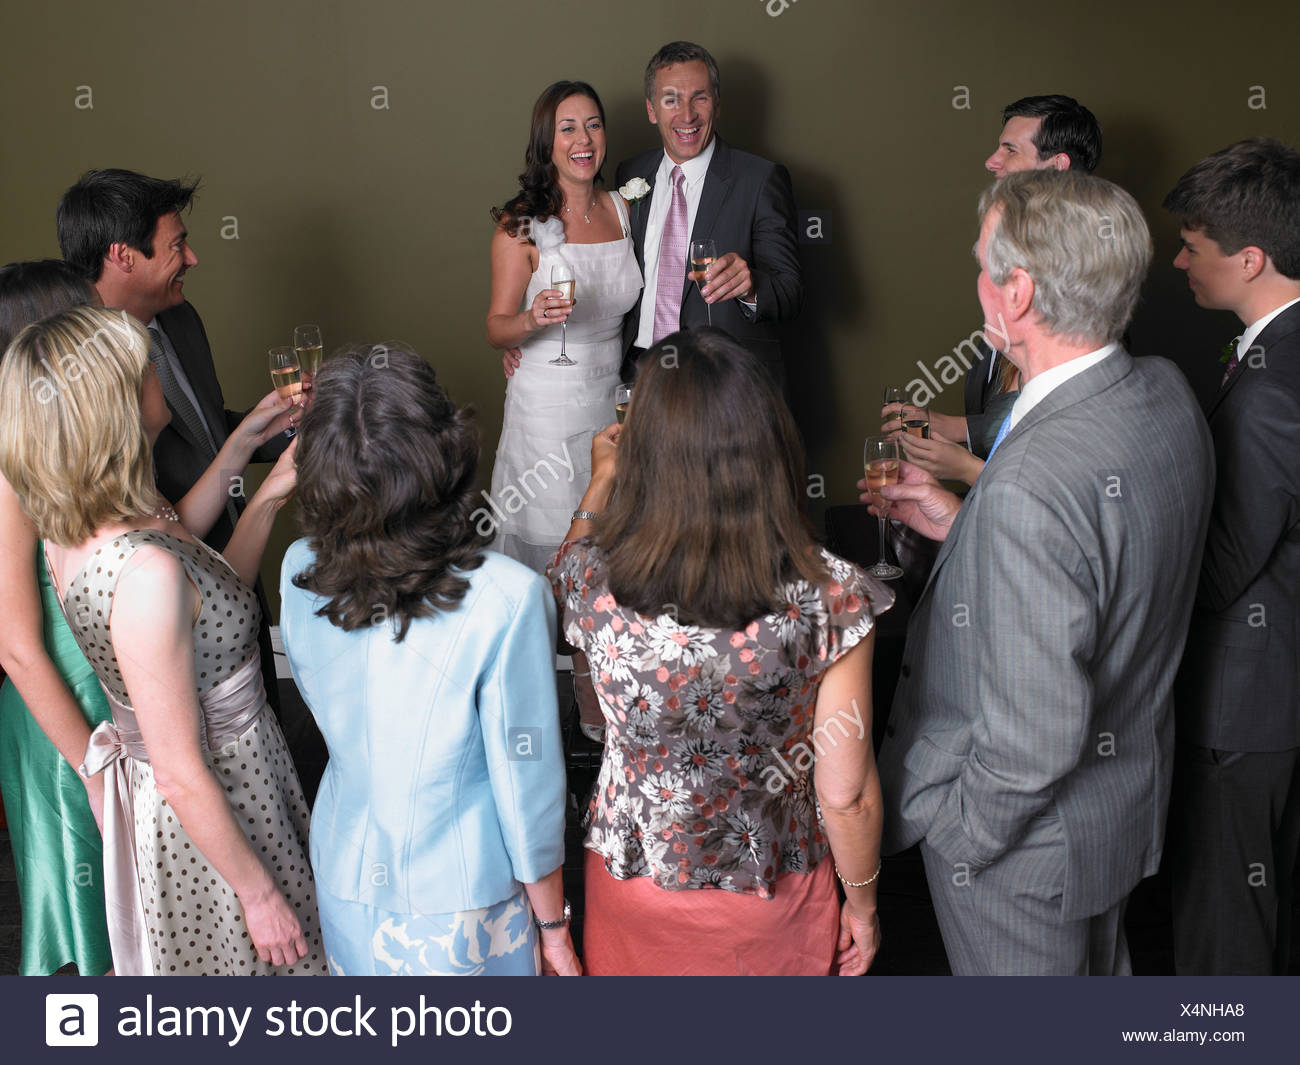 Wedding guests toasting the bride and groom - Stock Image